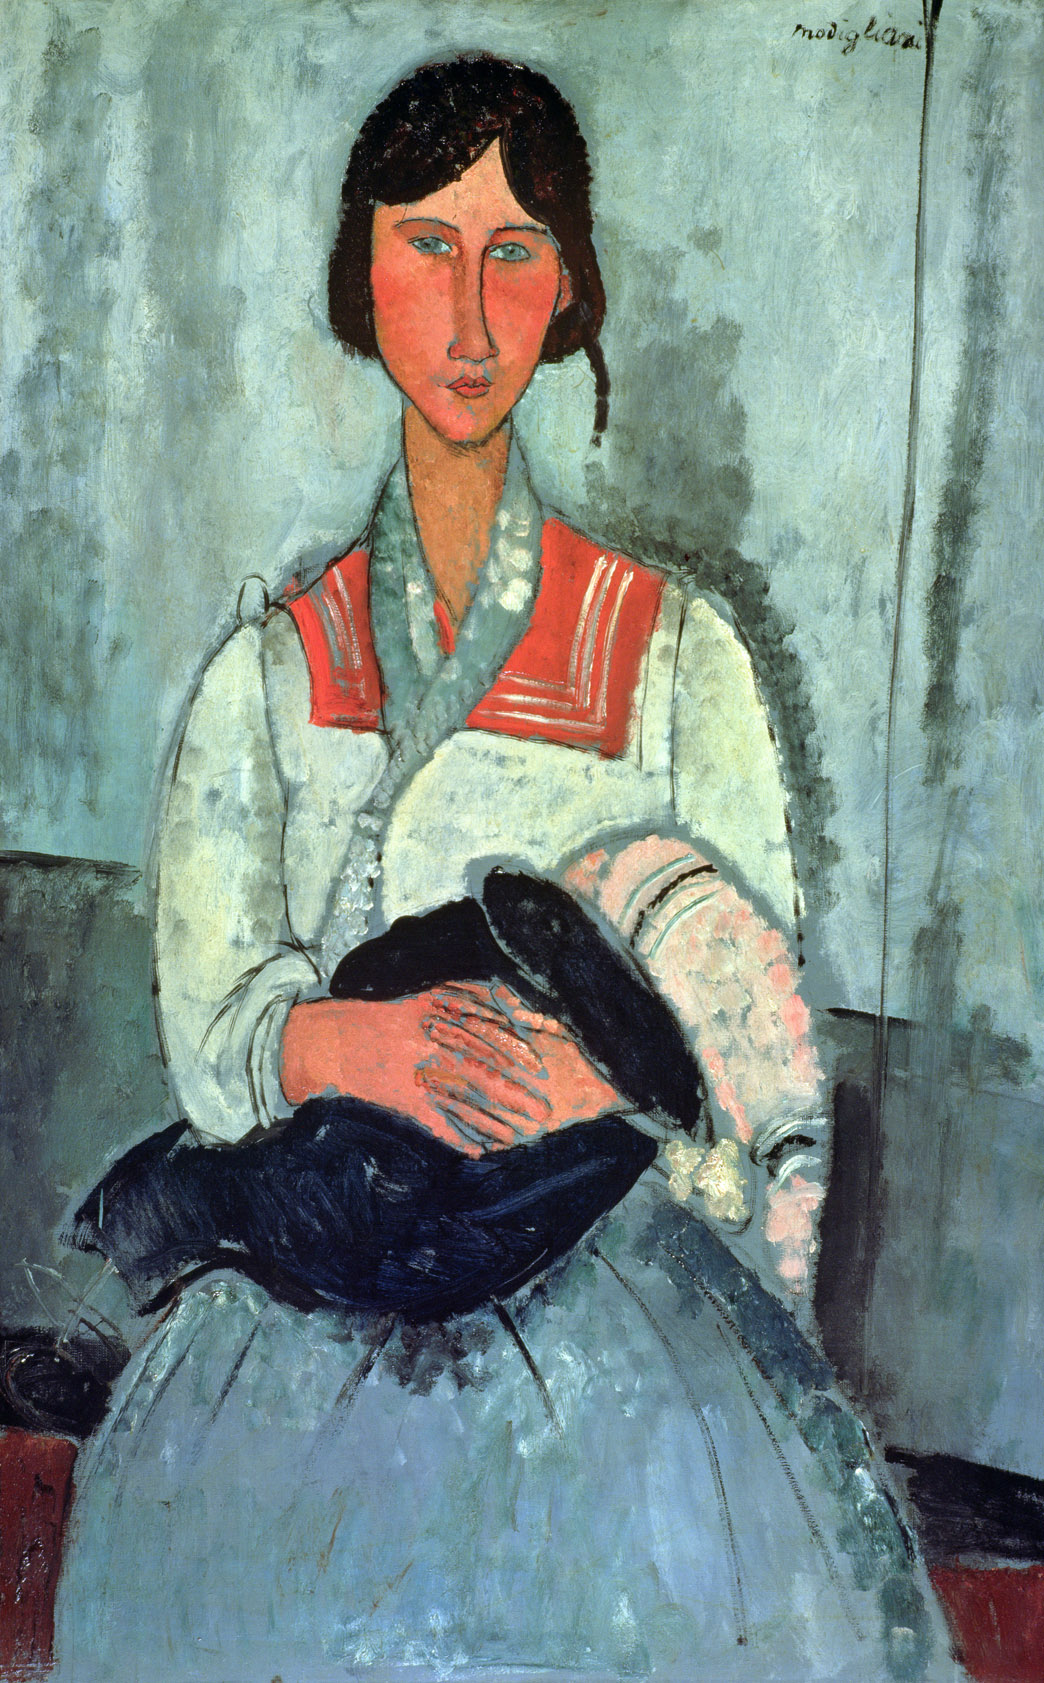 Gypsy Woman with a Baby, by Amedeo Modigliani, 1919. National Gallery of Art, Washington, D.C.